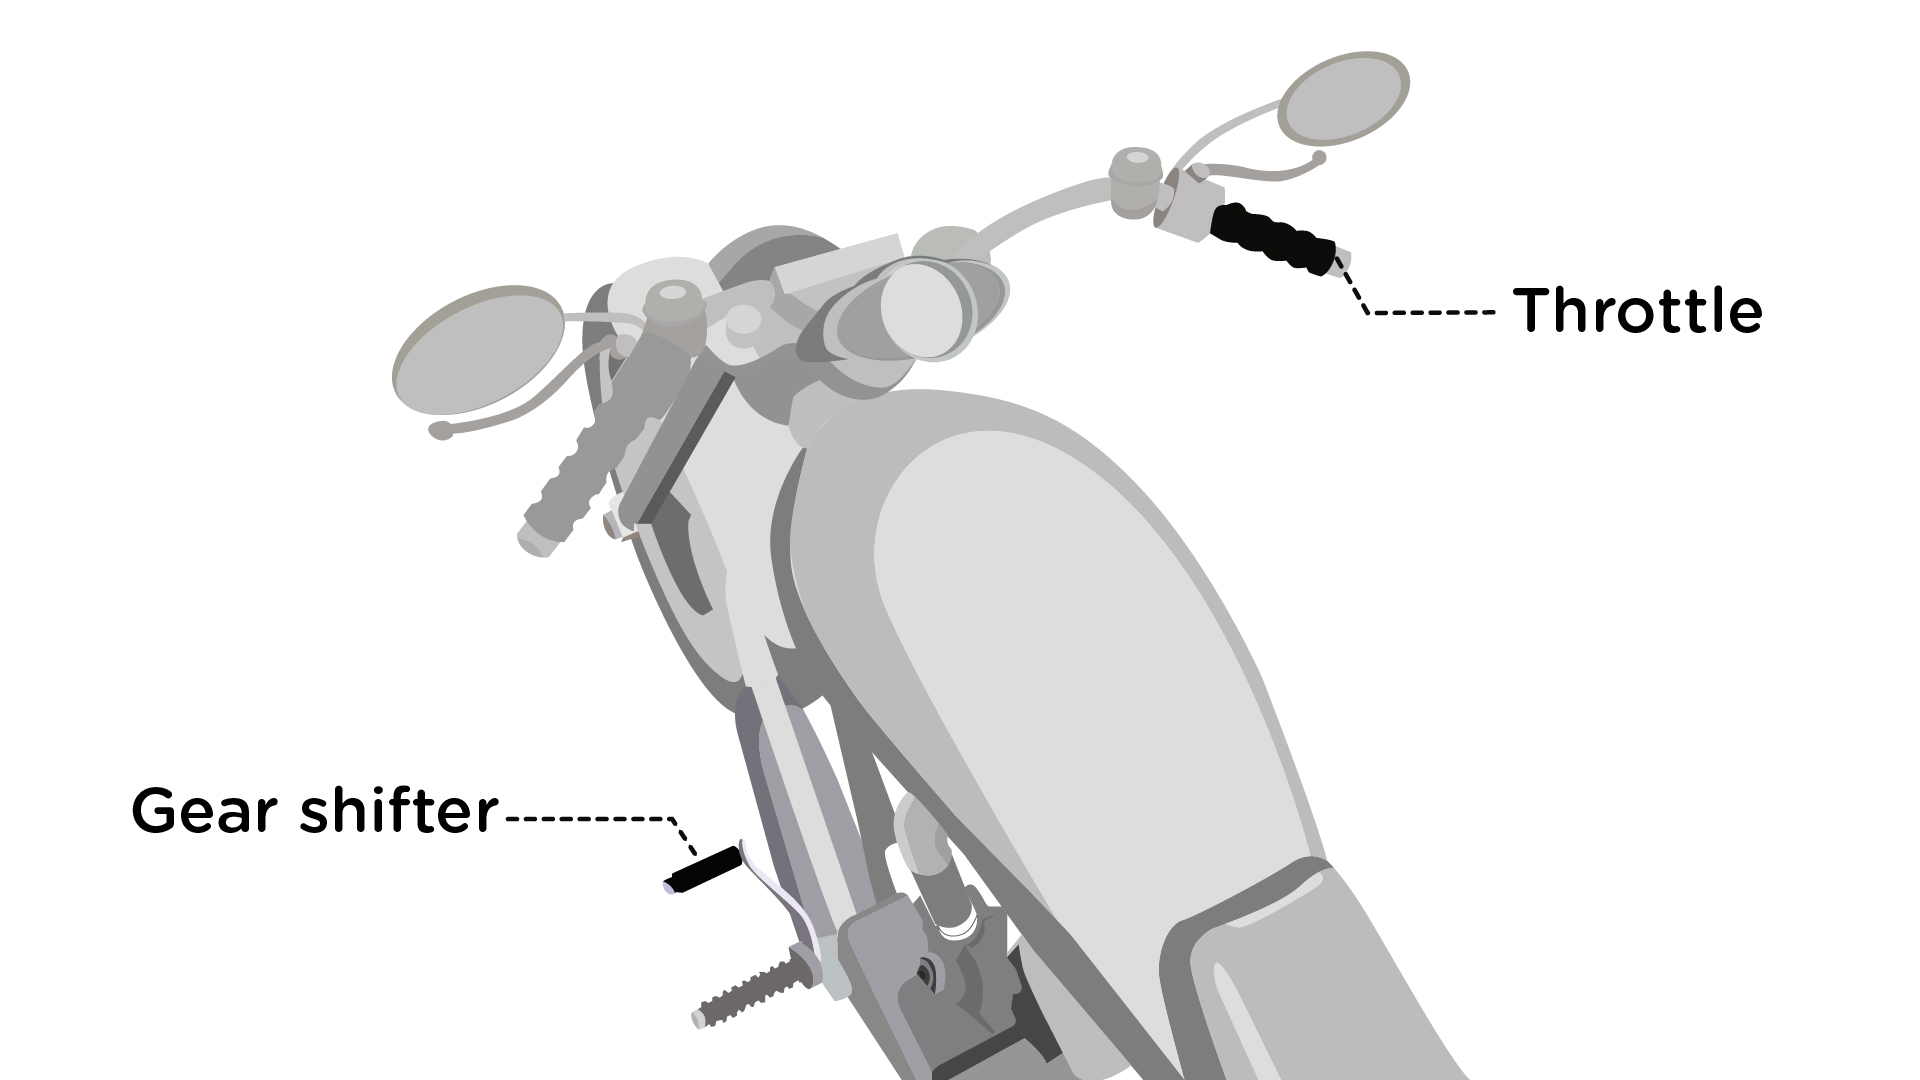 hight resolution of how to shift gears on a motorcycle